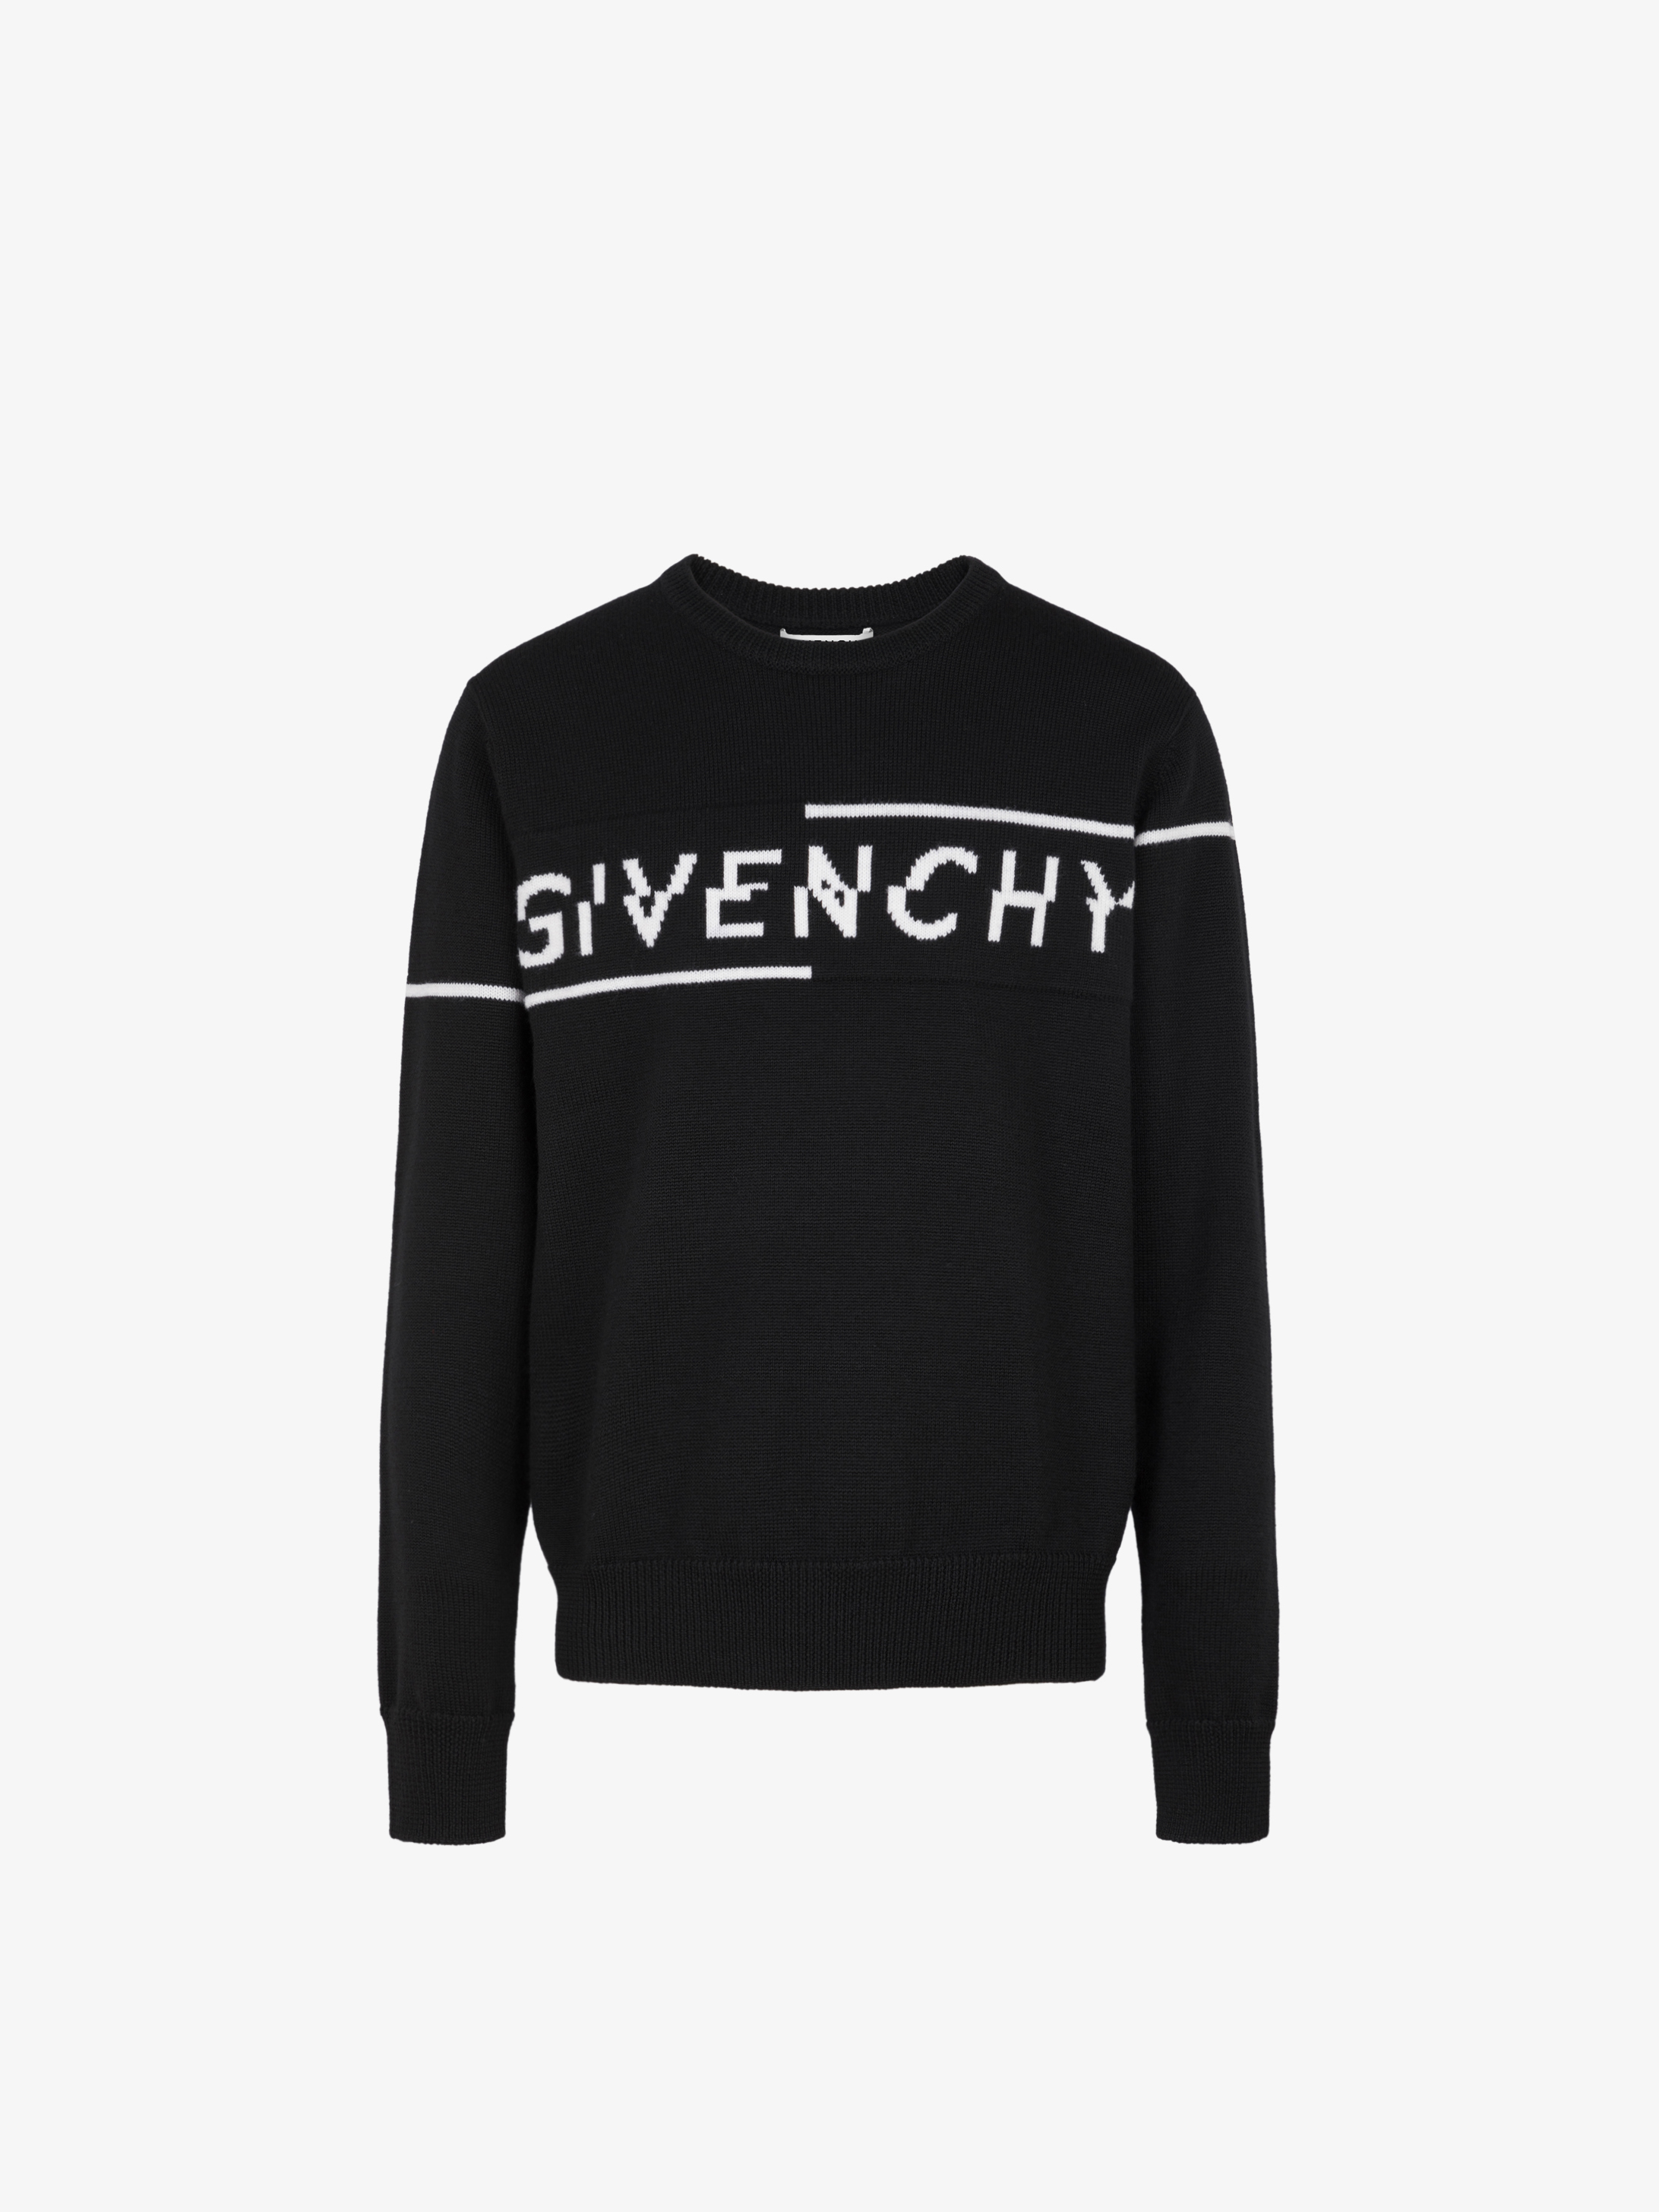 GIVENCHY SPLIT sweater in jersey